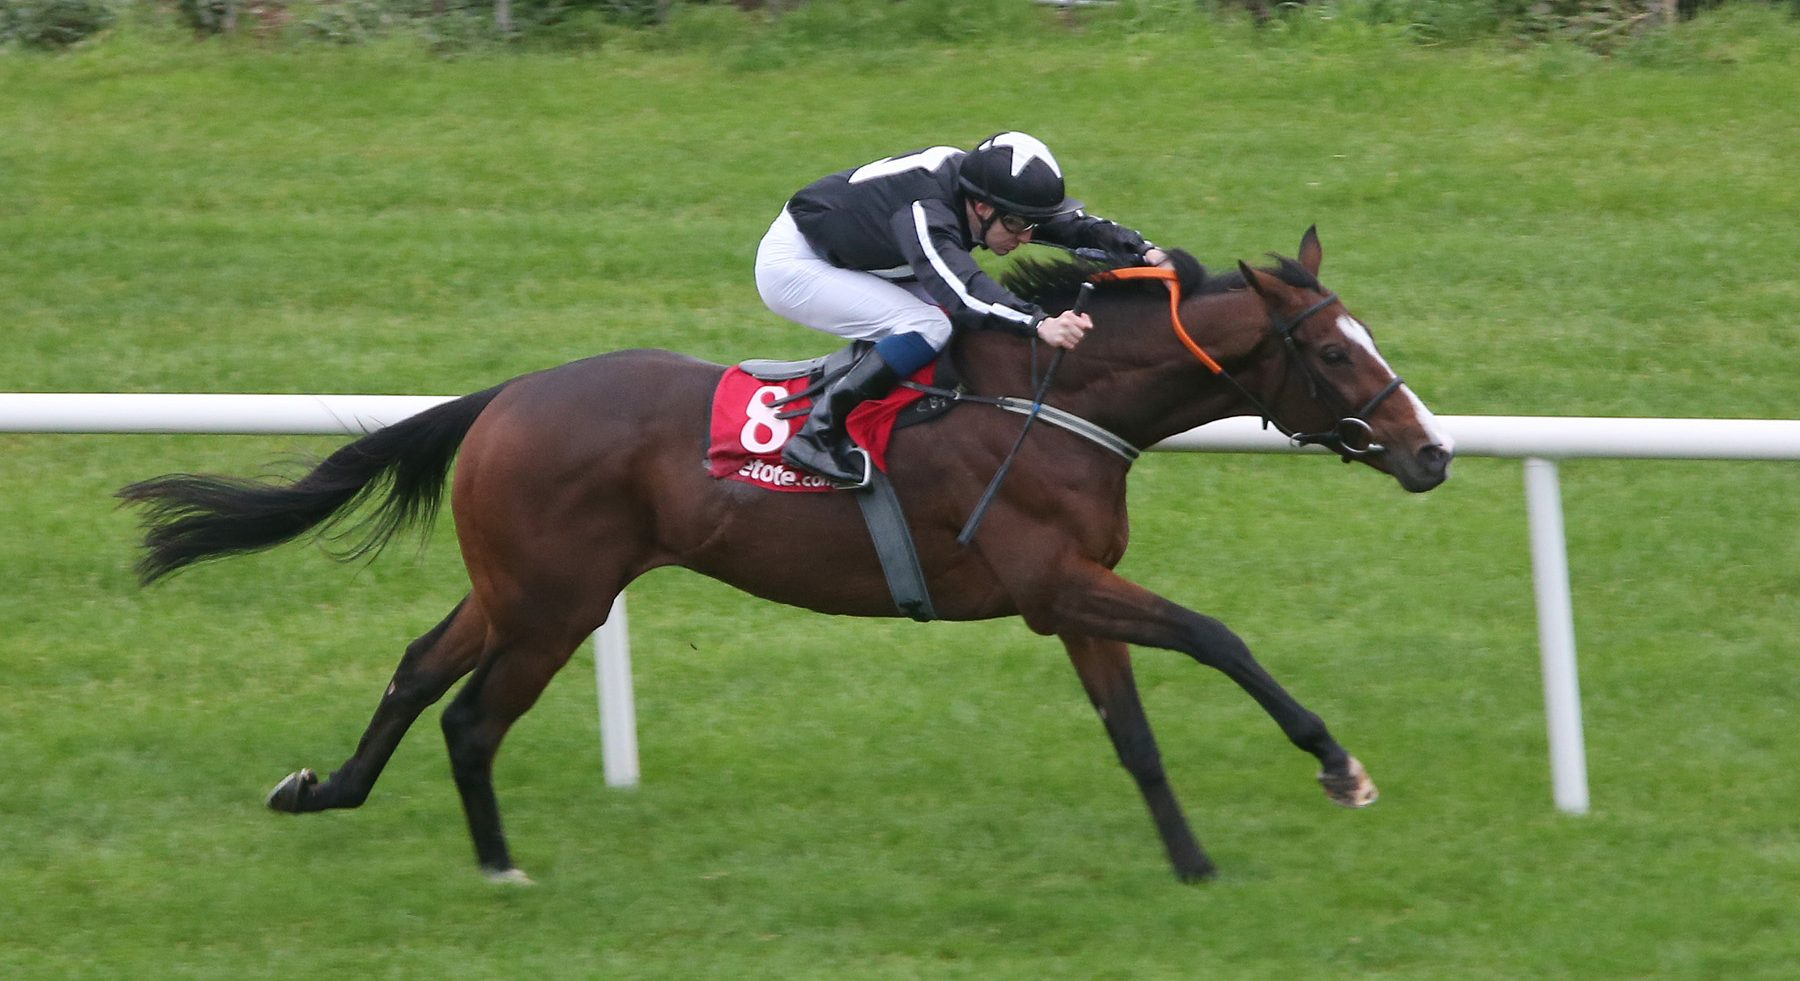 Wonder Laish ridden by Colm O'Donoghue winning The Tote October